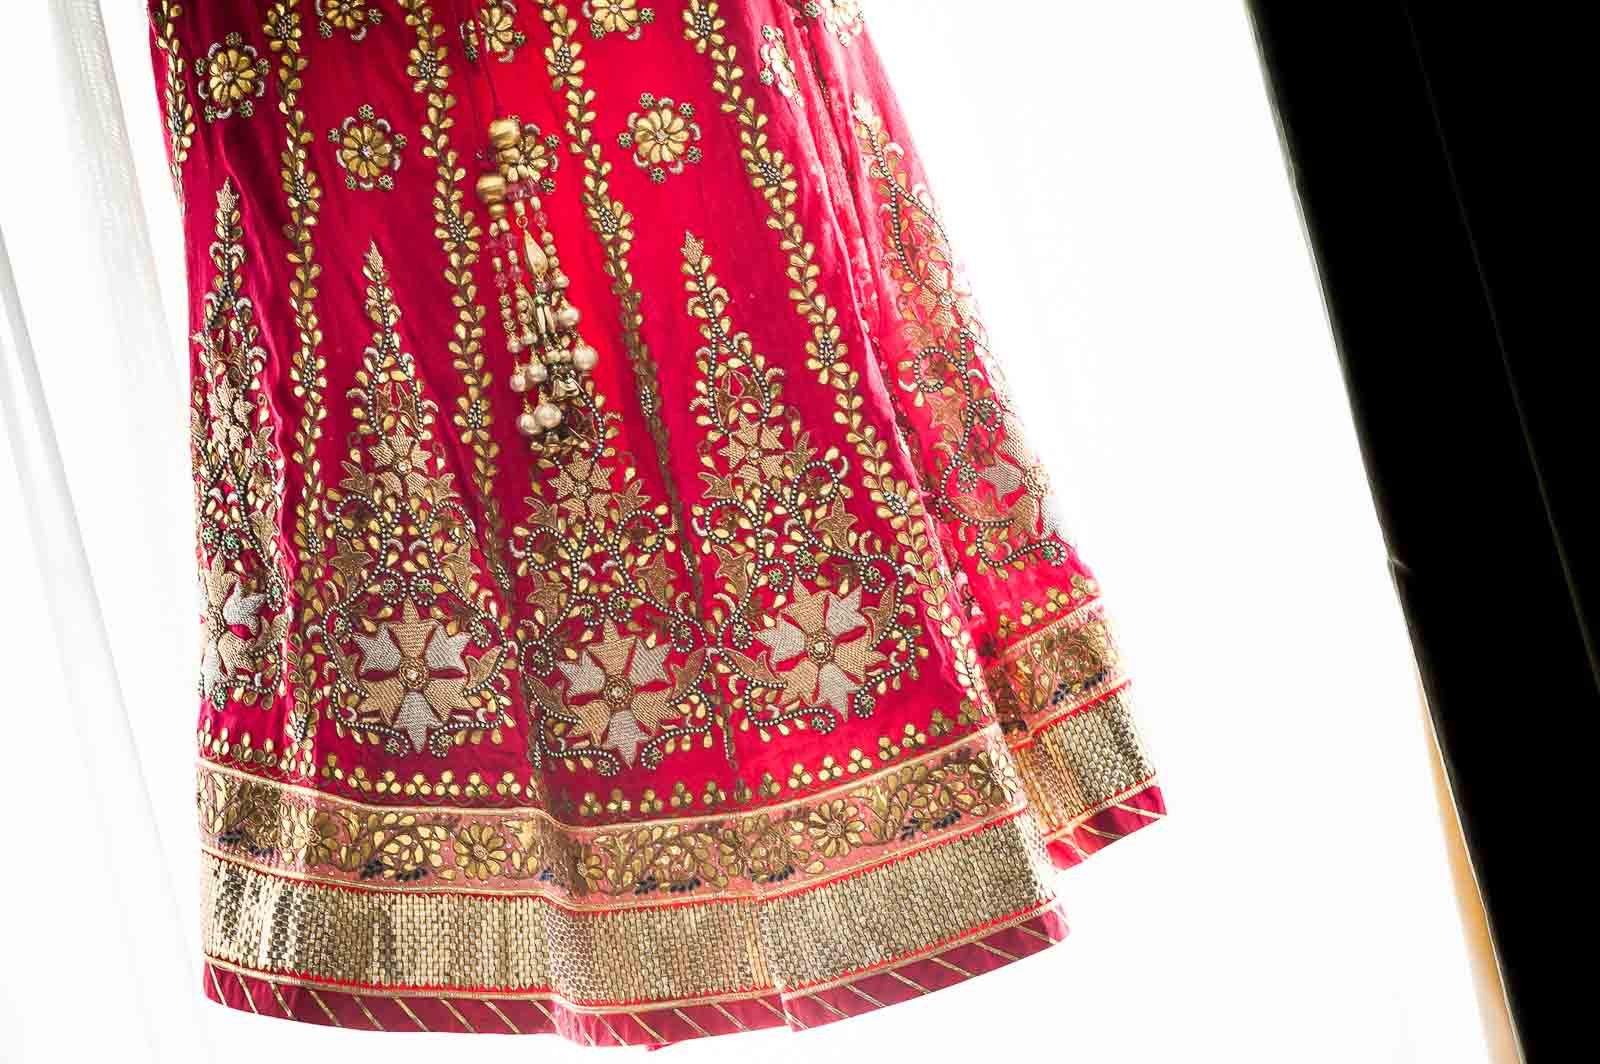 anoop-wedding-photographer-amazing-pink-lehenga